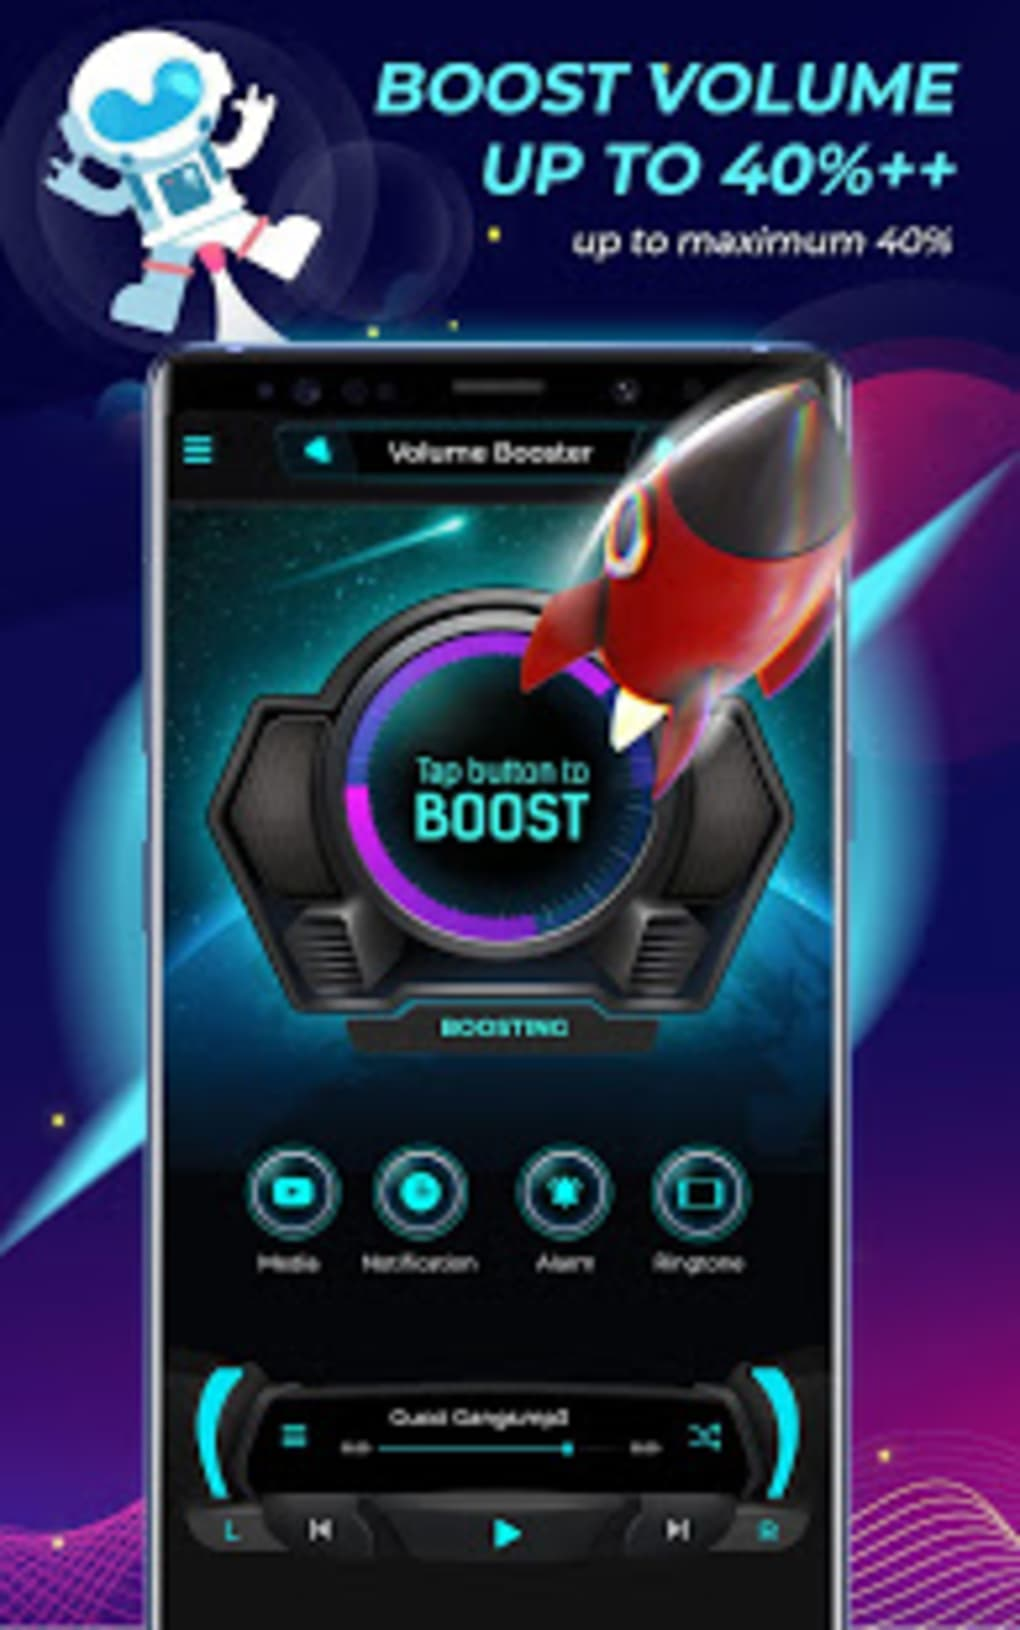 Galaxy Volume Booster Volume Up Sound Enhancer for Android